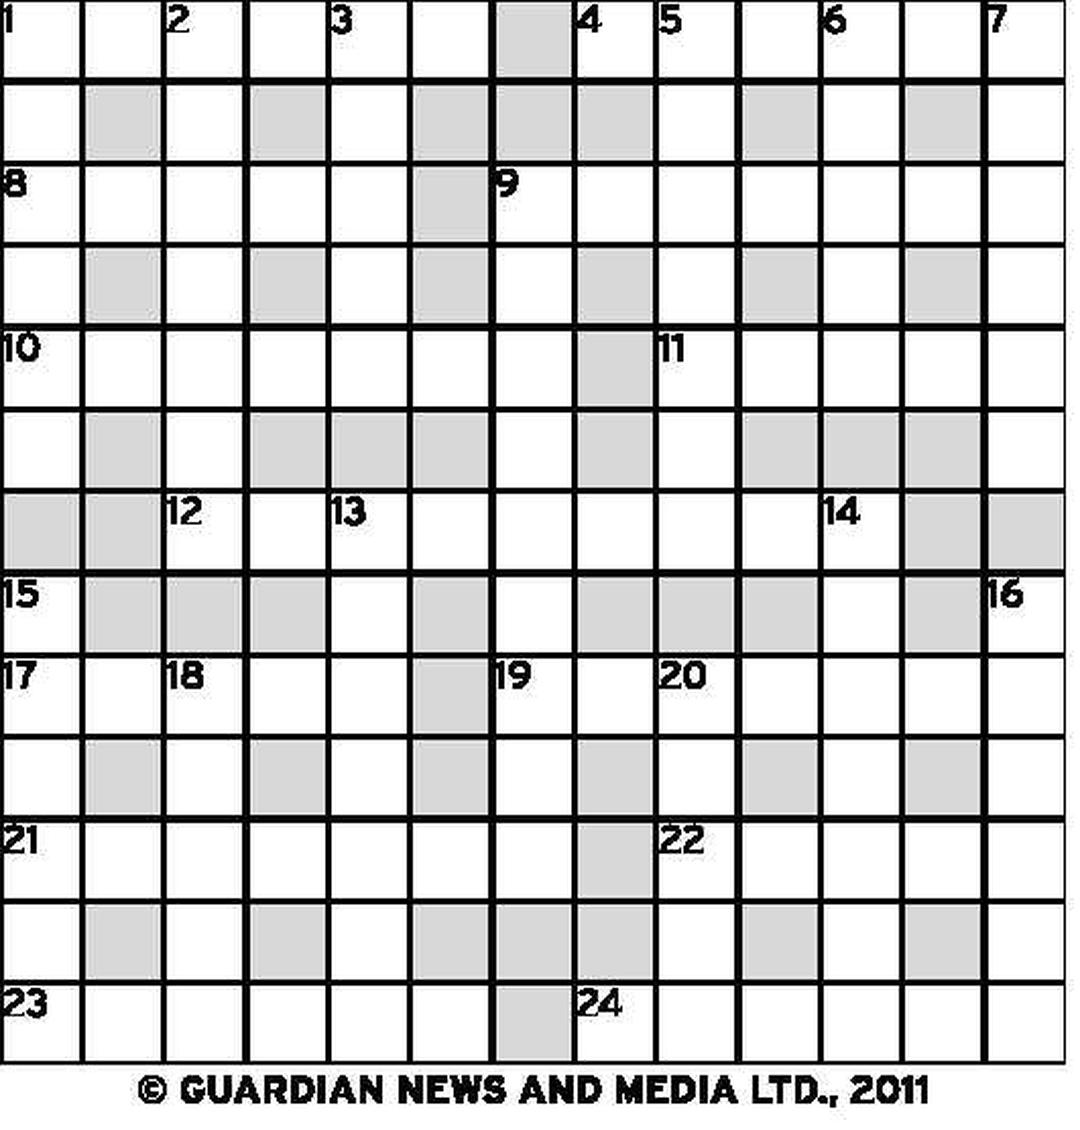 guardian newspaper quick crossword